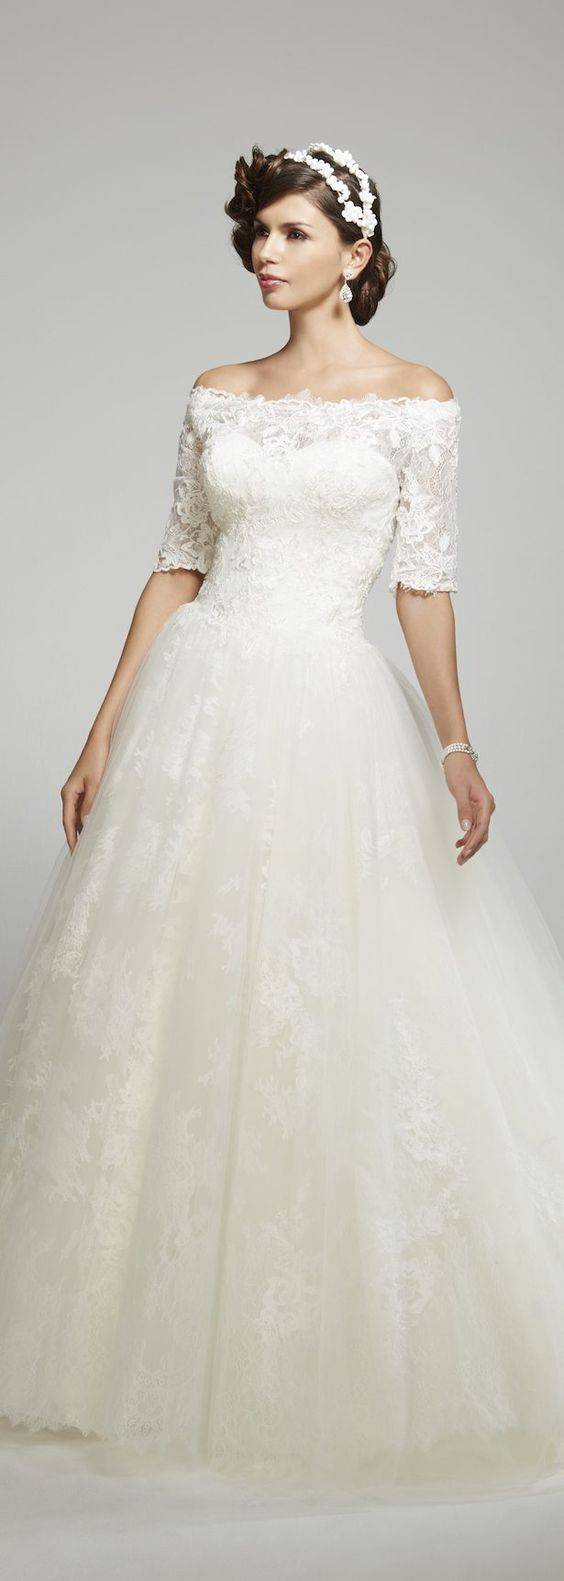 Lovely lace off-the-shoulder tulle skirt ballgown wedding dress; Featured Dress: Matthew Christopher